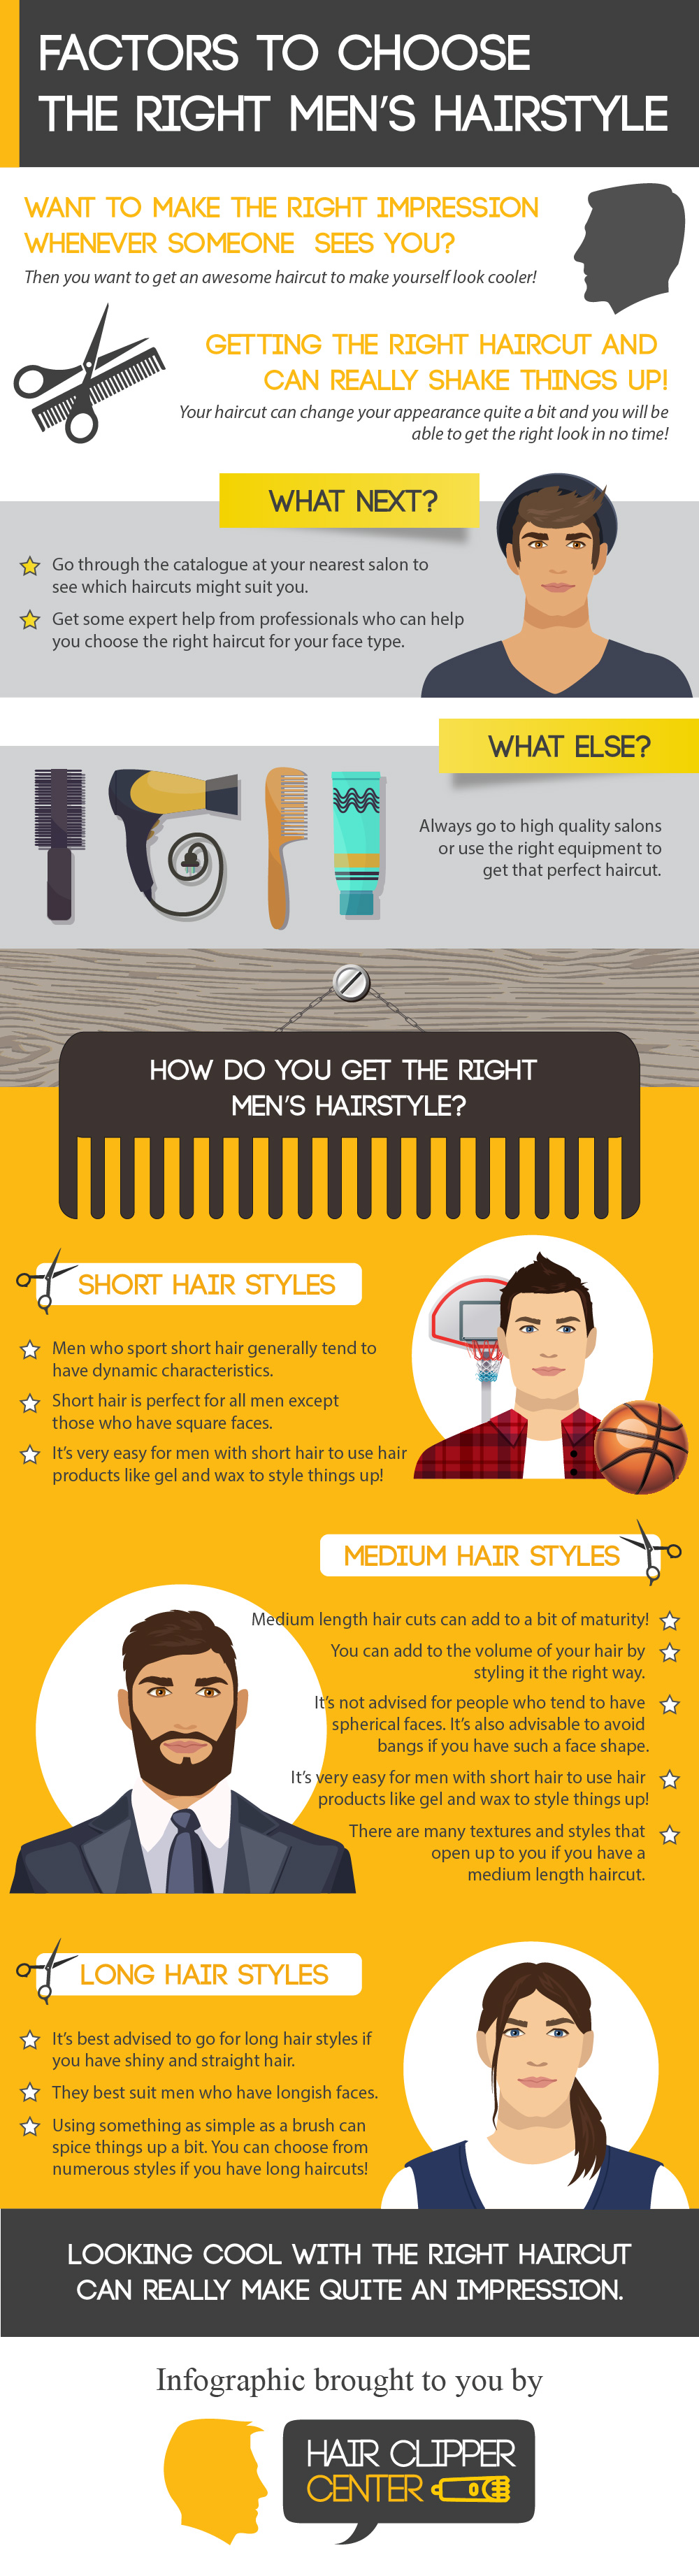 Factors to choose the right men's hairstyle-01